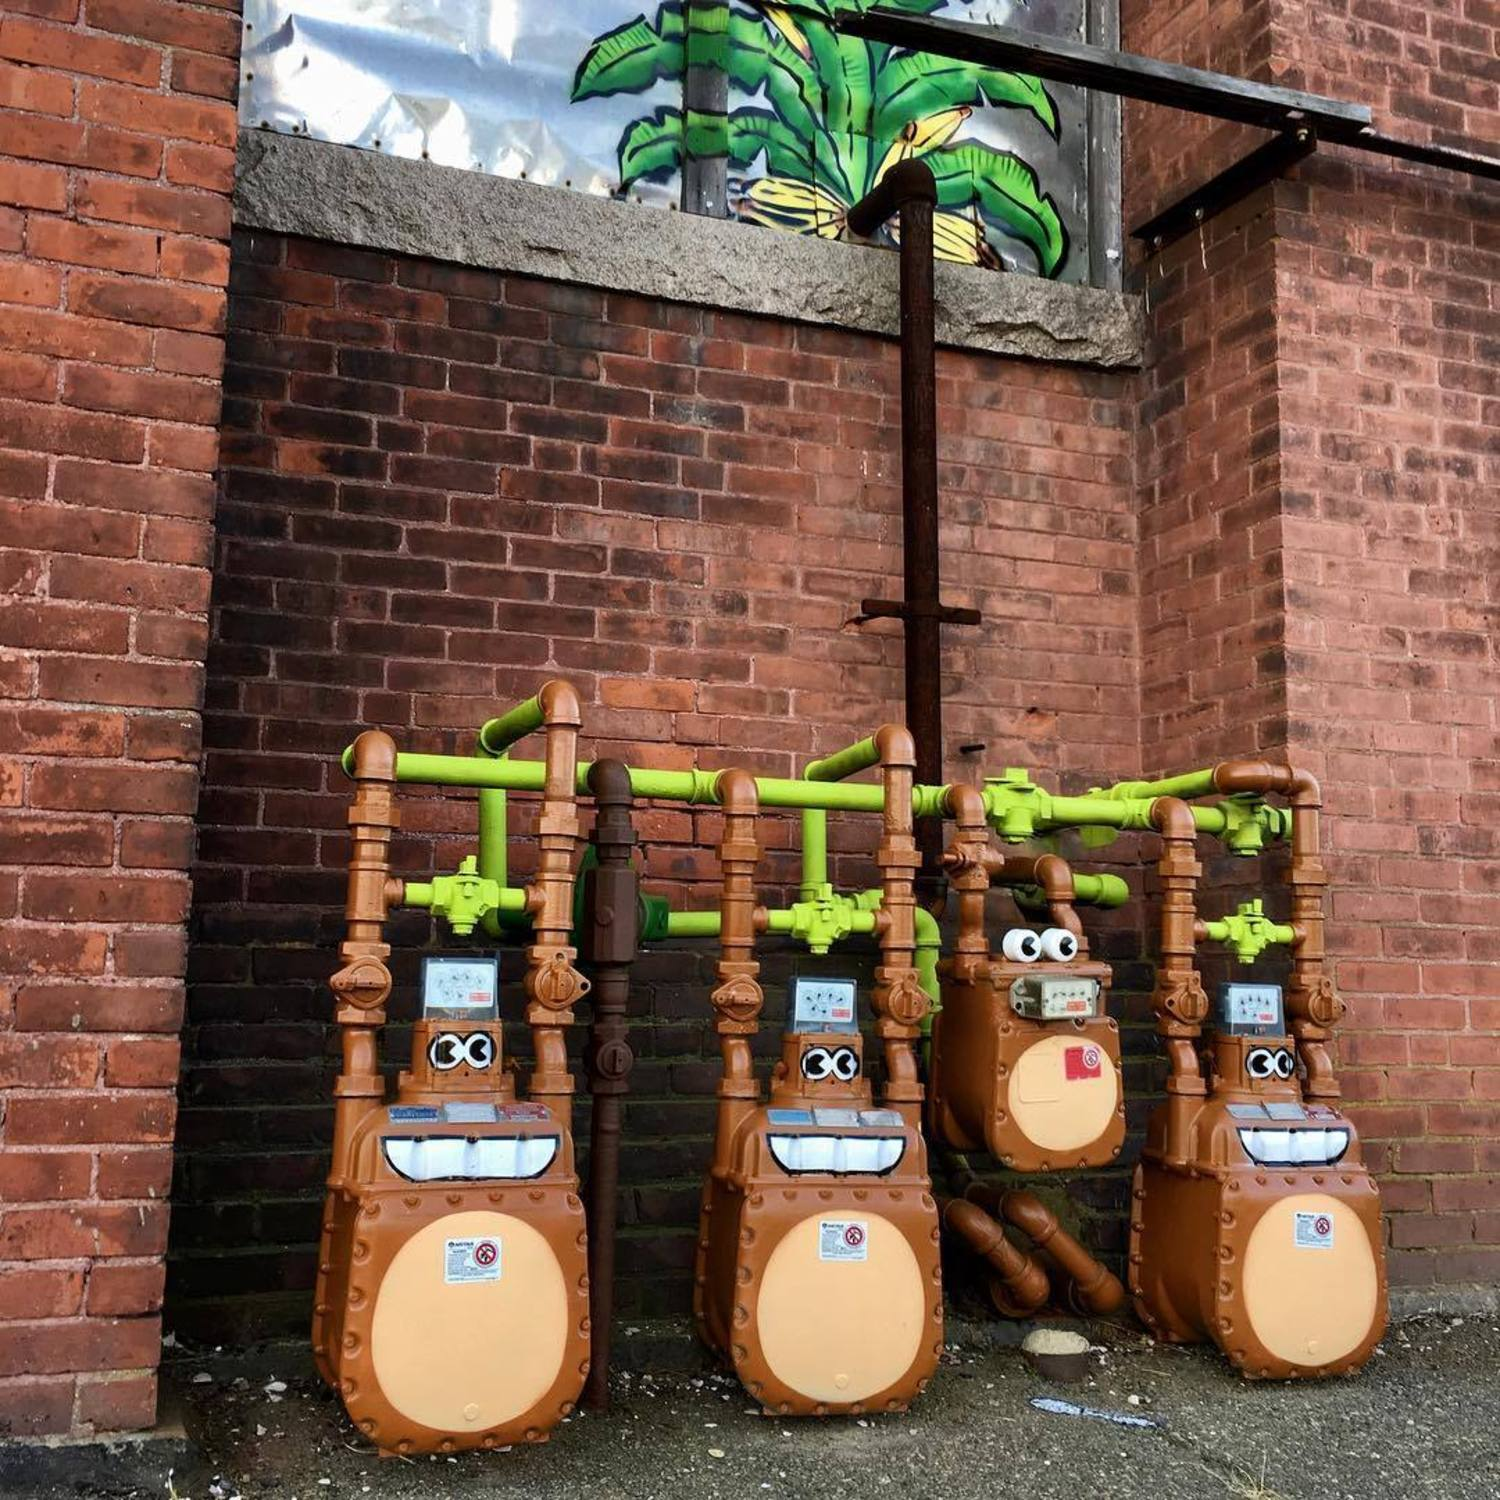 MONKEYS HANGING AROUND... #🐒🐒🐒🐒 in #newbedford #massachusetts #rodney #french #blvd #streetart #nbma #publicart #monkeys #🐒 #🍌 #tombobnyc #stencilart #🌴 #tombob #monkeybusiness #🐒🍌🌴#electrical #meters